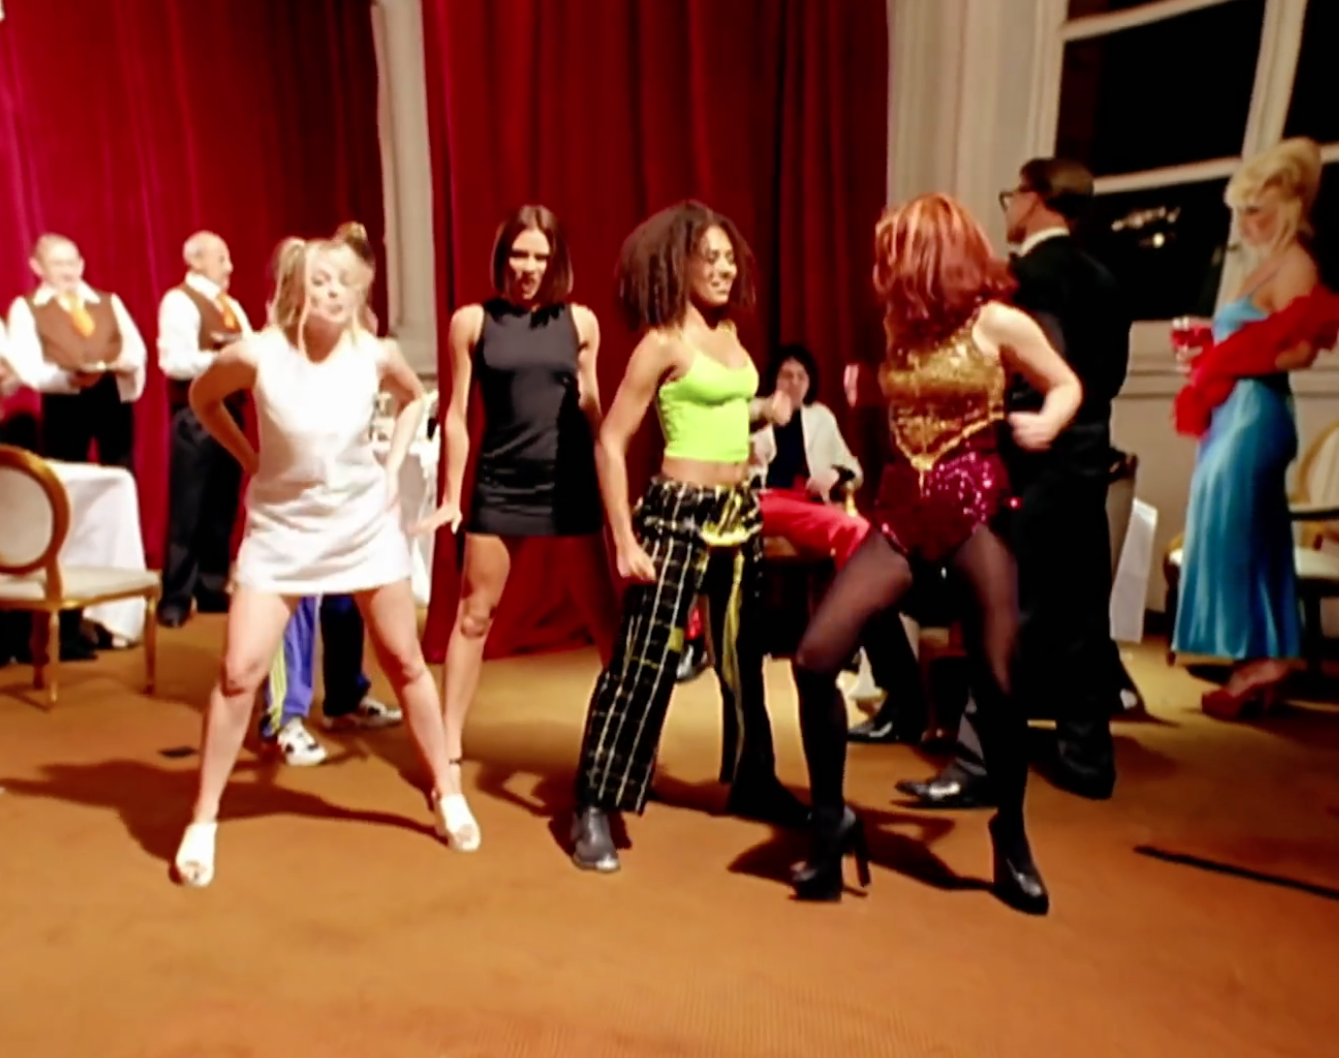 Screenshot 2021 06 16 at 14.23.40 e1623849910556 Zig-A-Zig-Ah! It's 25 Fascinating Facts About The Spice Girls!